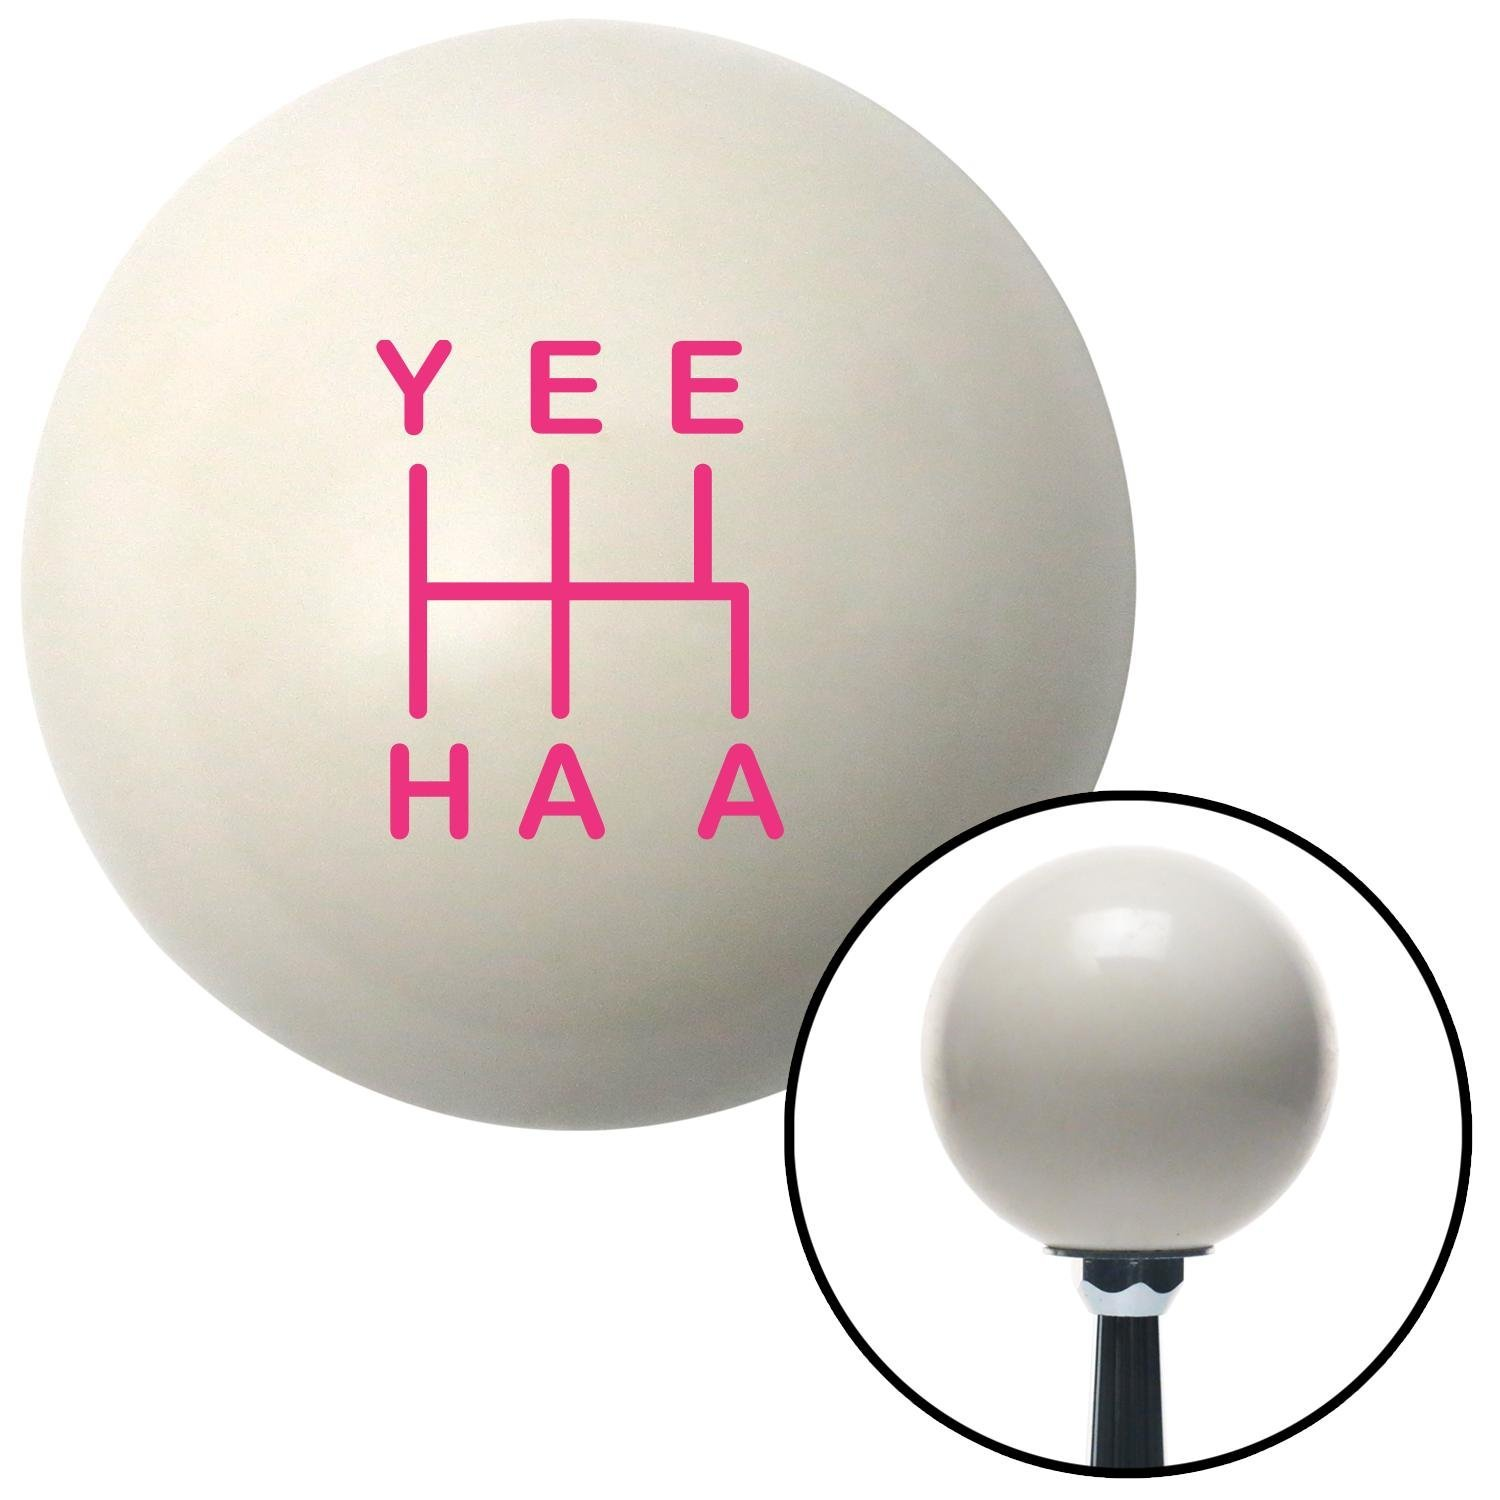 American Shifter 301304 Shift Knob Pink YeeHaa 5 Speed Ivory with M16 x 1.5 Insert